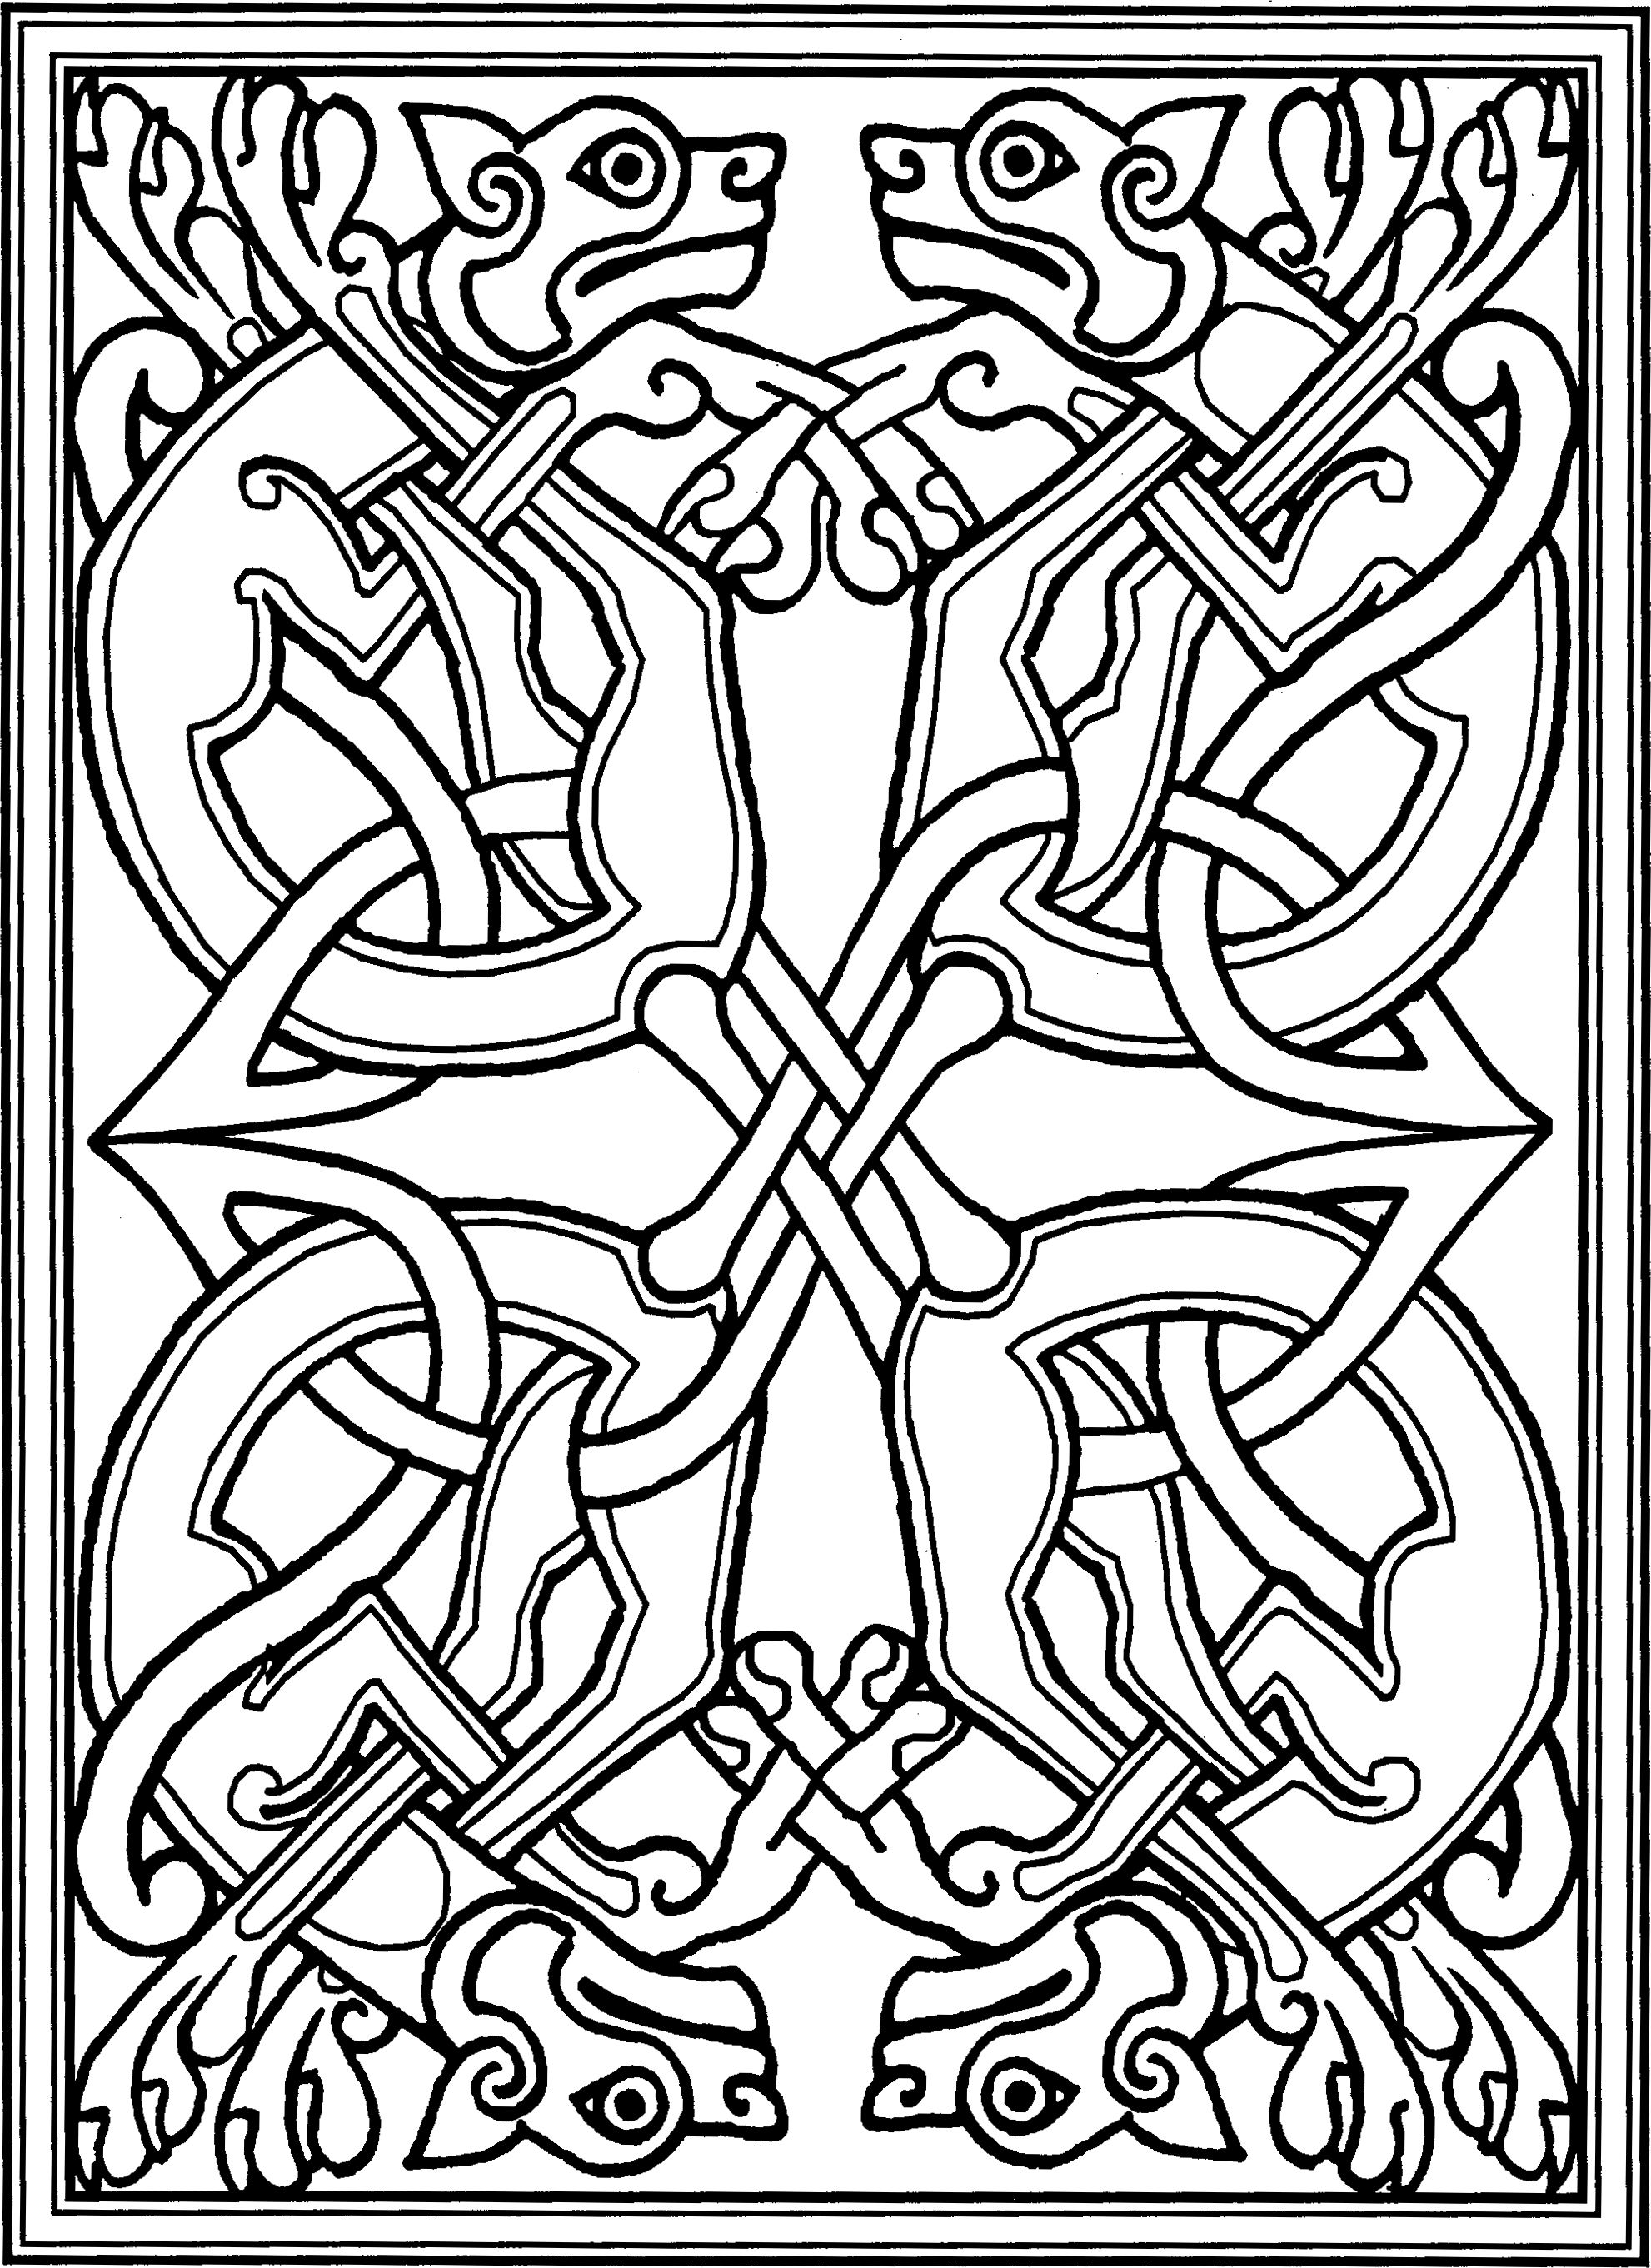 Book Of Kells Coloring Pages Celtic Coloring Celtic Art Celtic